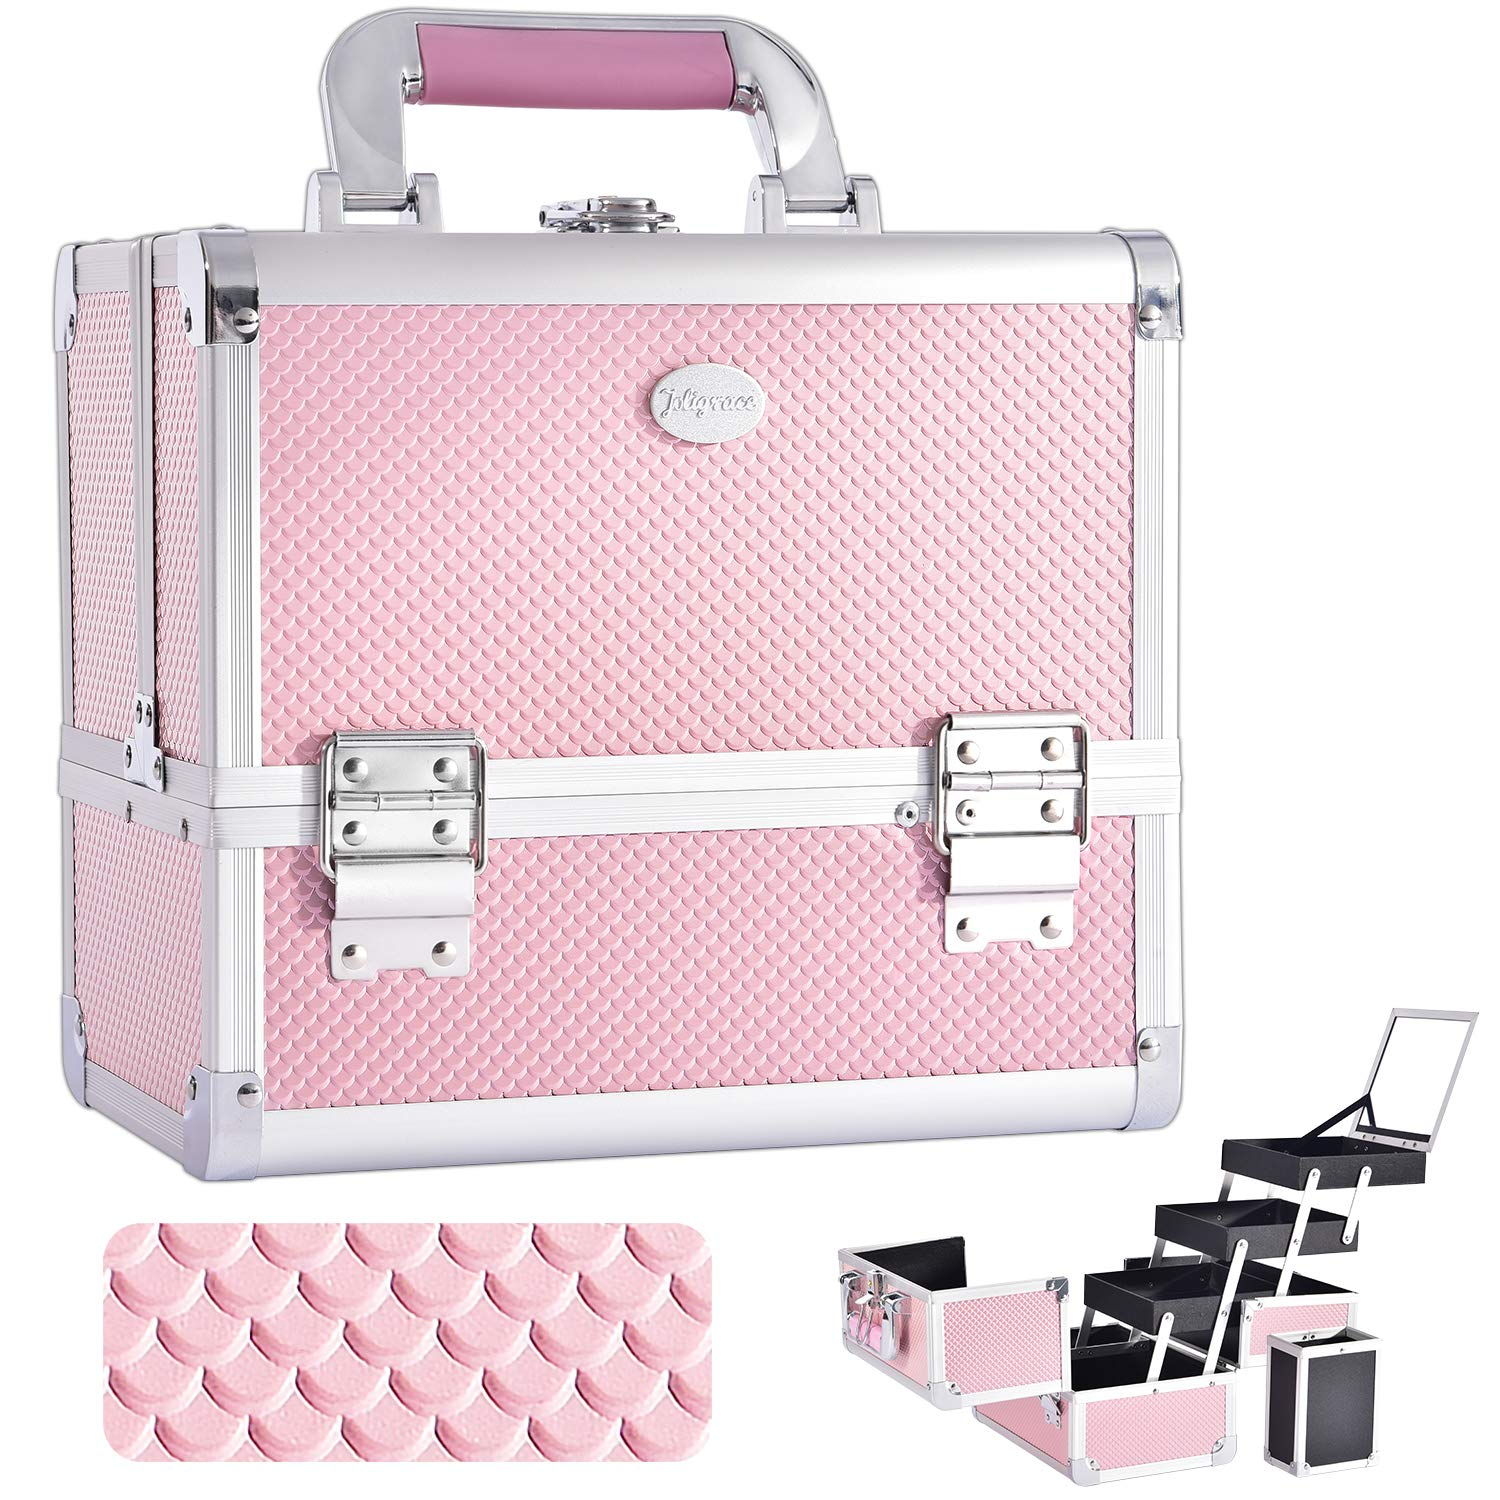 Joligrace Makeup Train Case Cosmetic Box 10 Inches Jewelry Organizer Professional 3 Tiers Trays with Mirror and Brush Holder Lockable Key Portable Travel Mermaid Pink by Joligrace